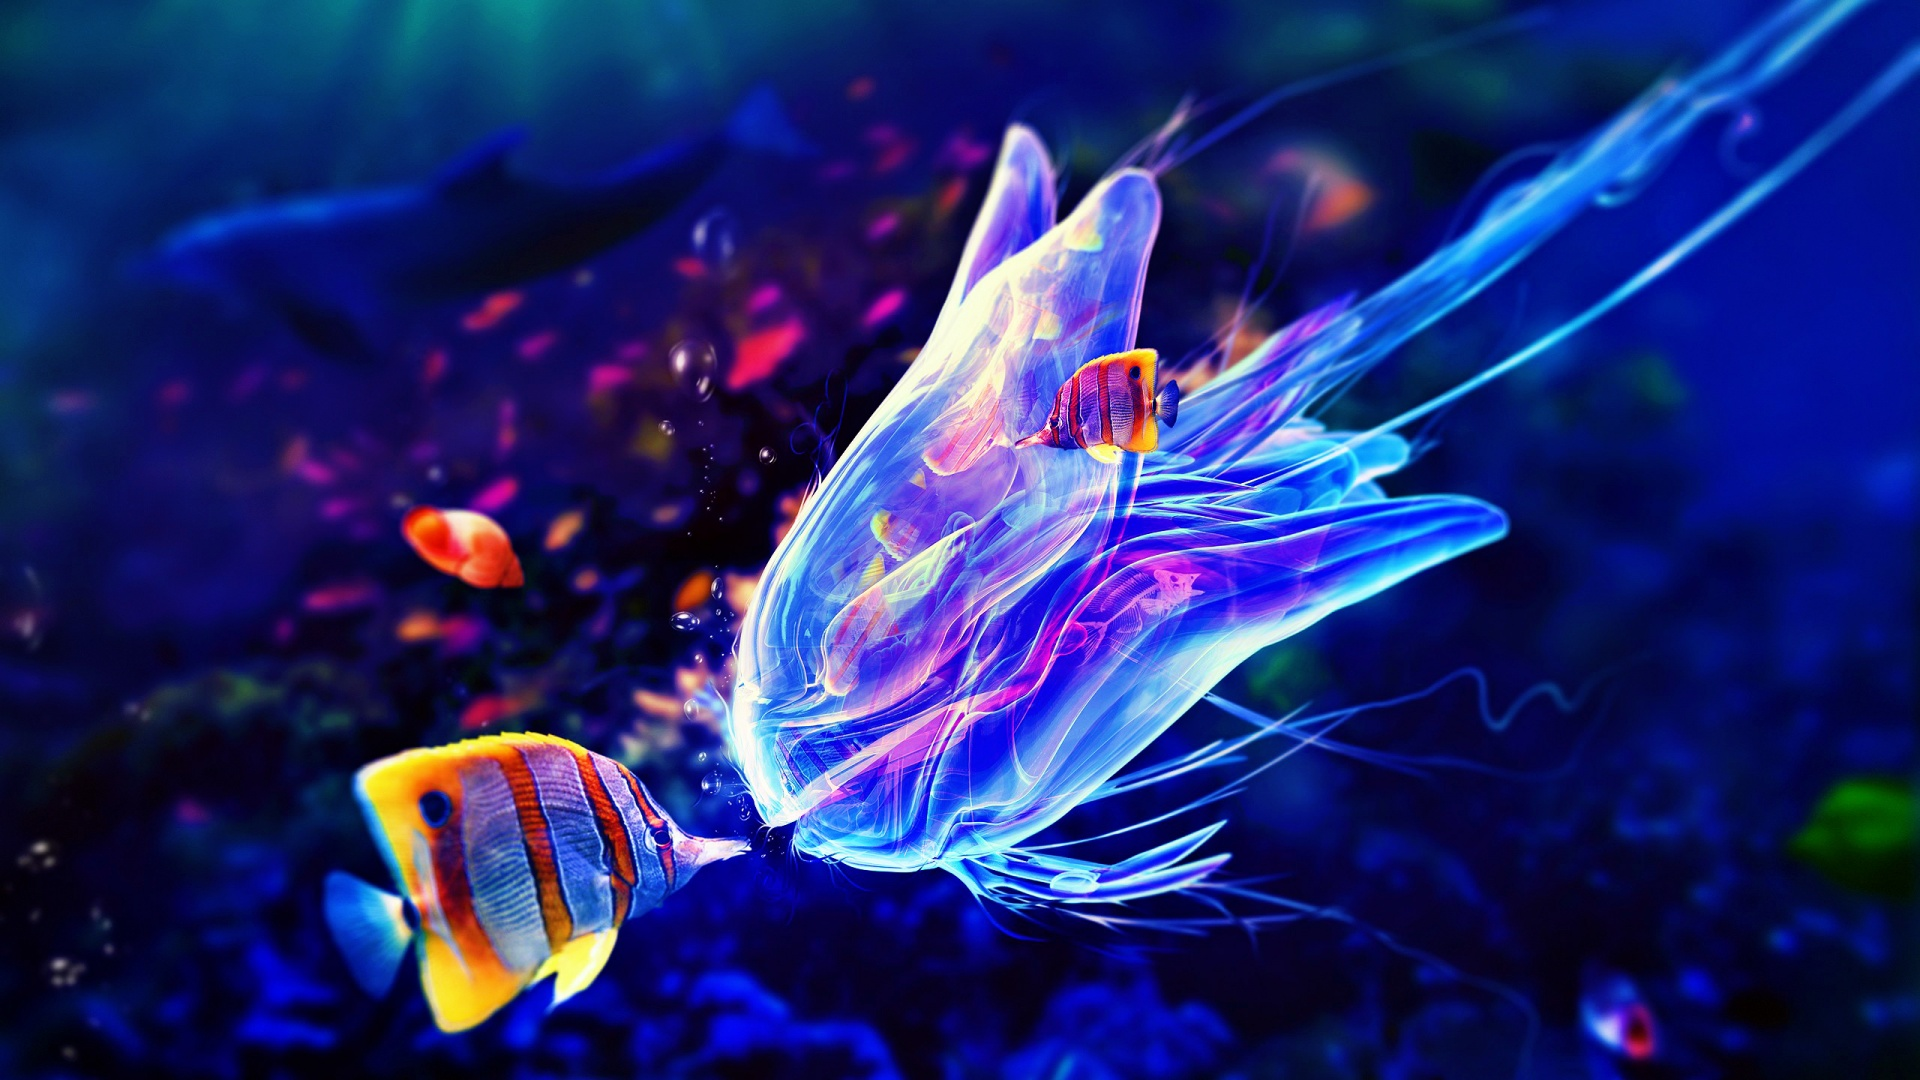 jellyfish art wallpaper 28014